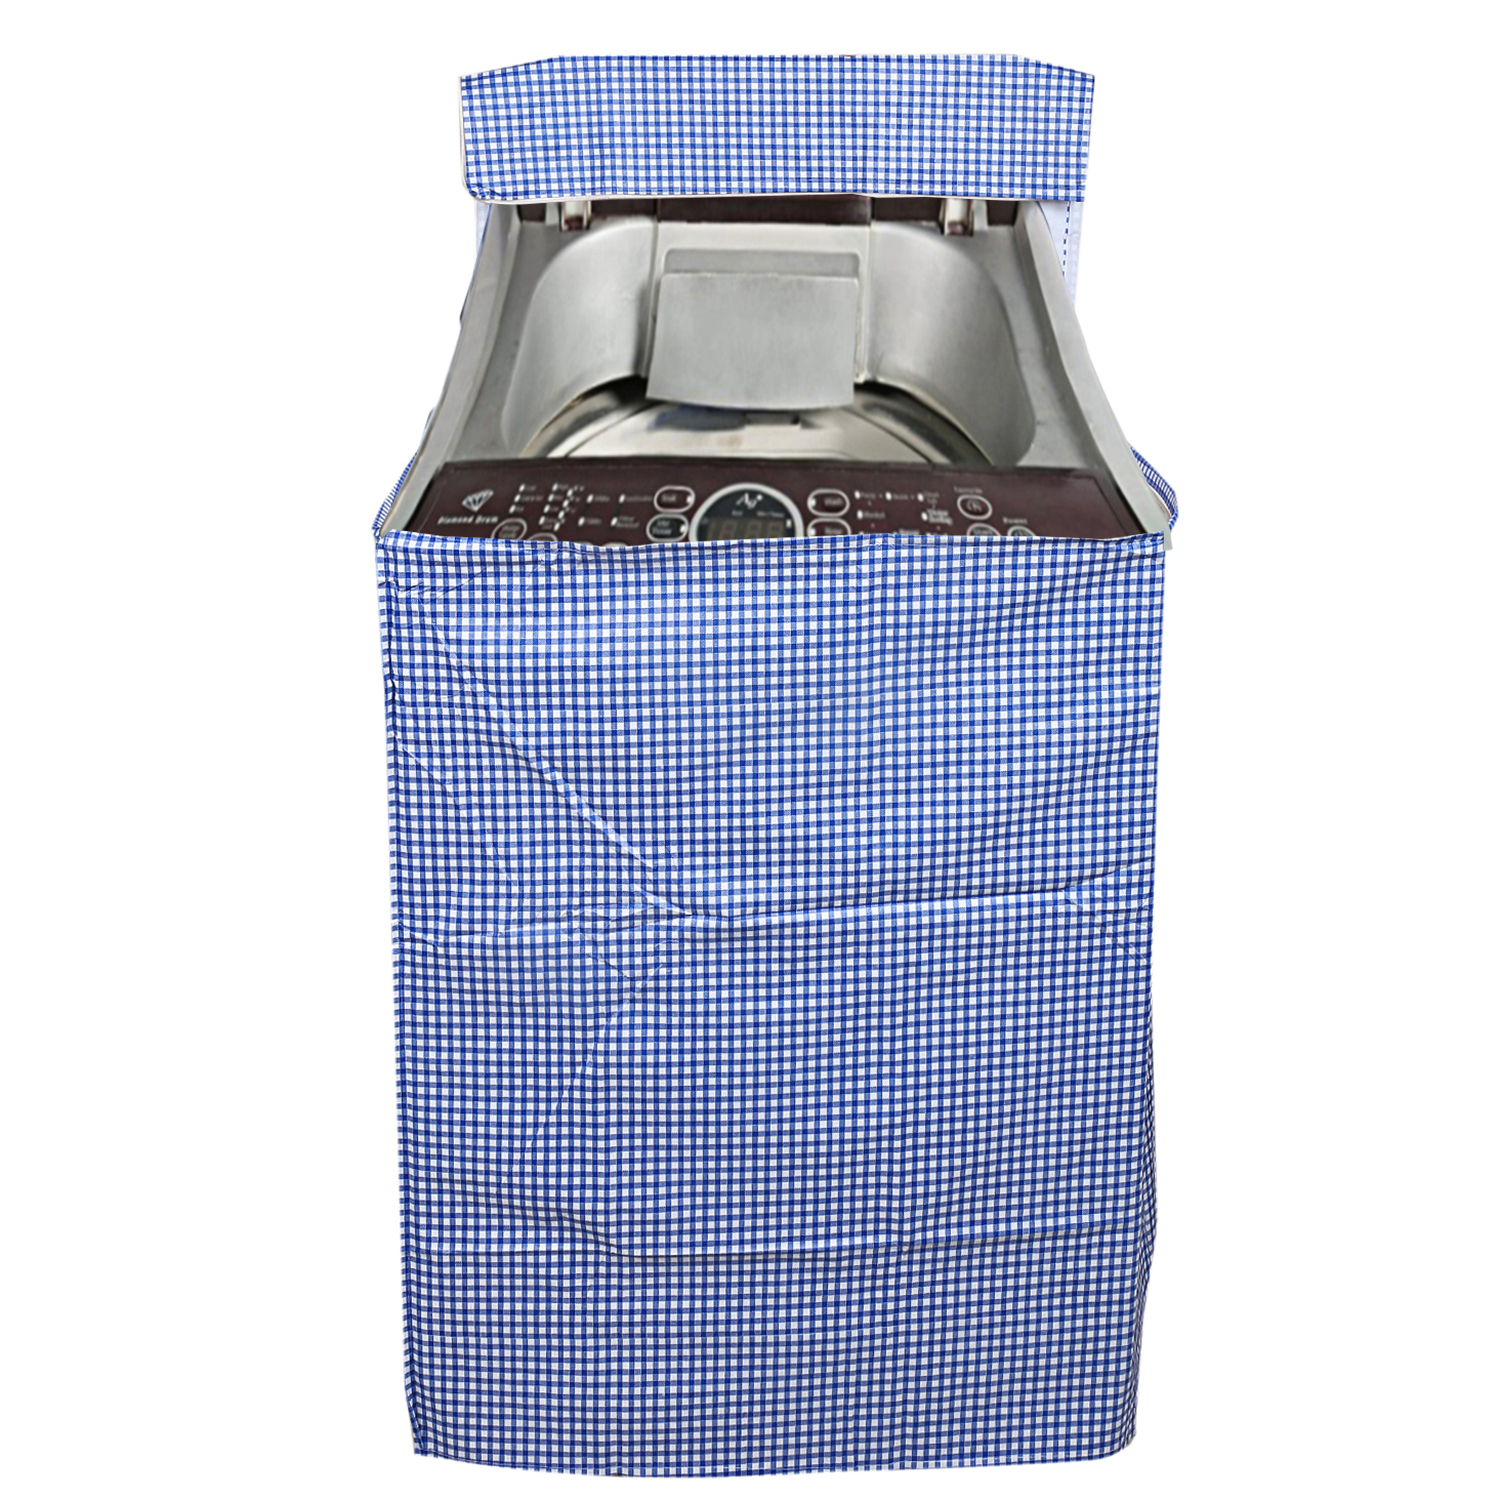 Kuber Industries PVC Top Load Fully Automatic Washing Machine Cover (Blue)